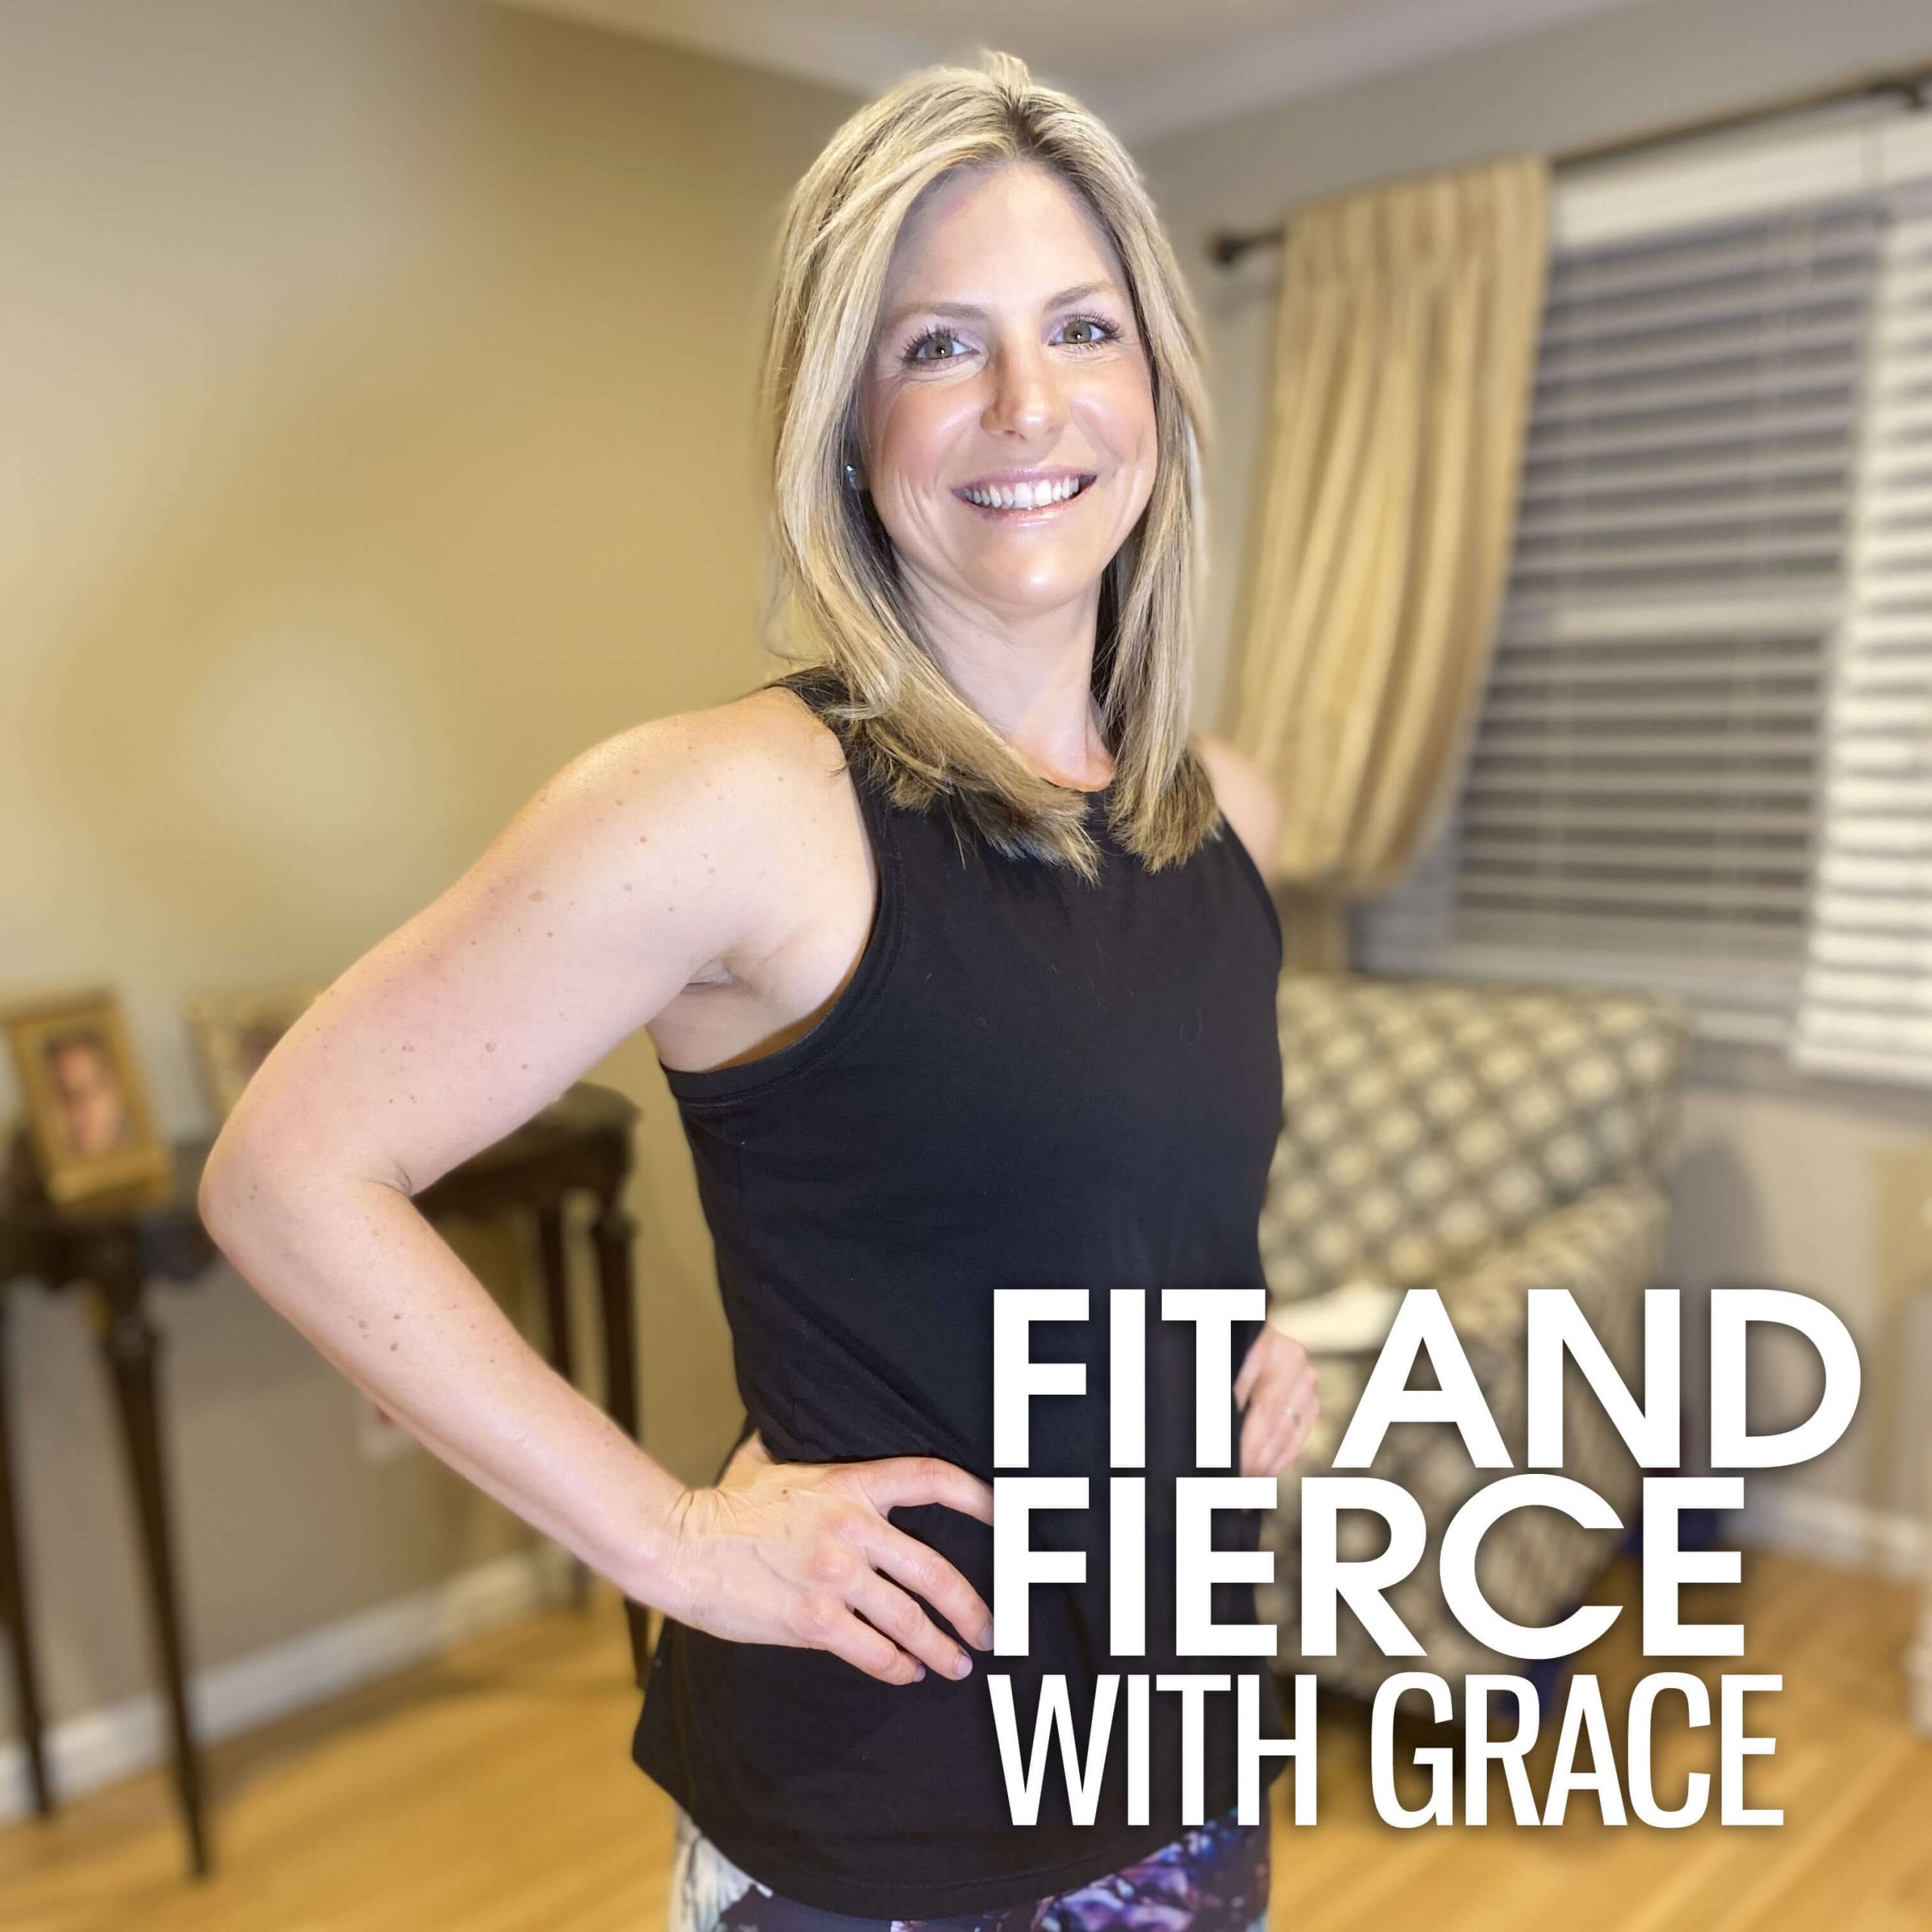 //www.goodforlifetraining.com/wp-content/uploads/2021/02/Grace-scaled.jpg